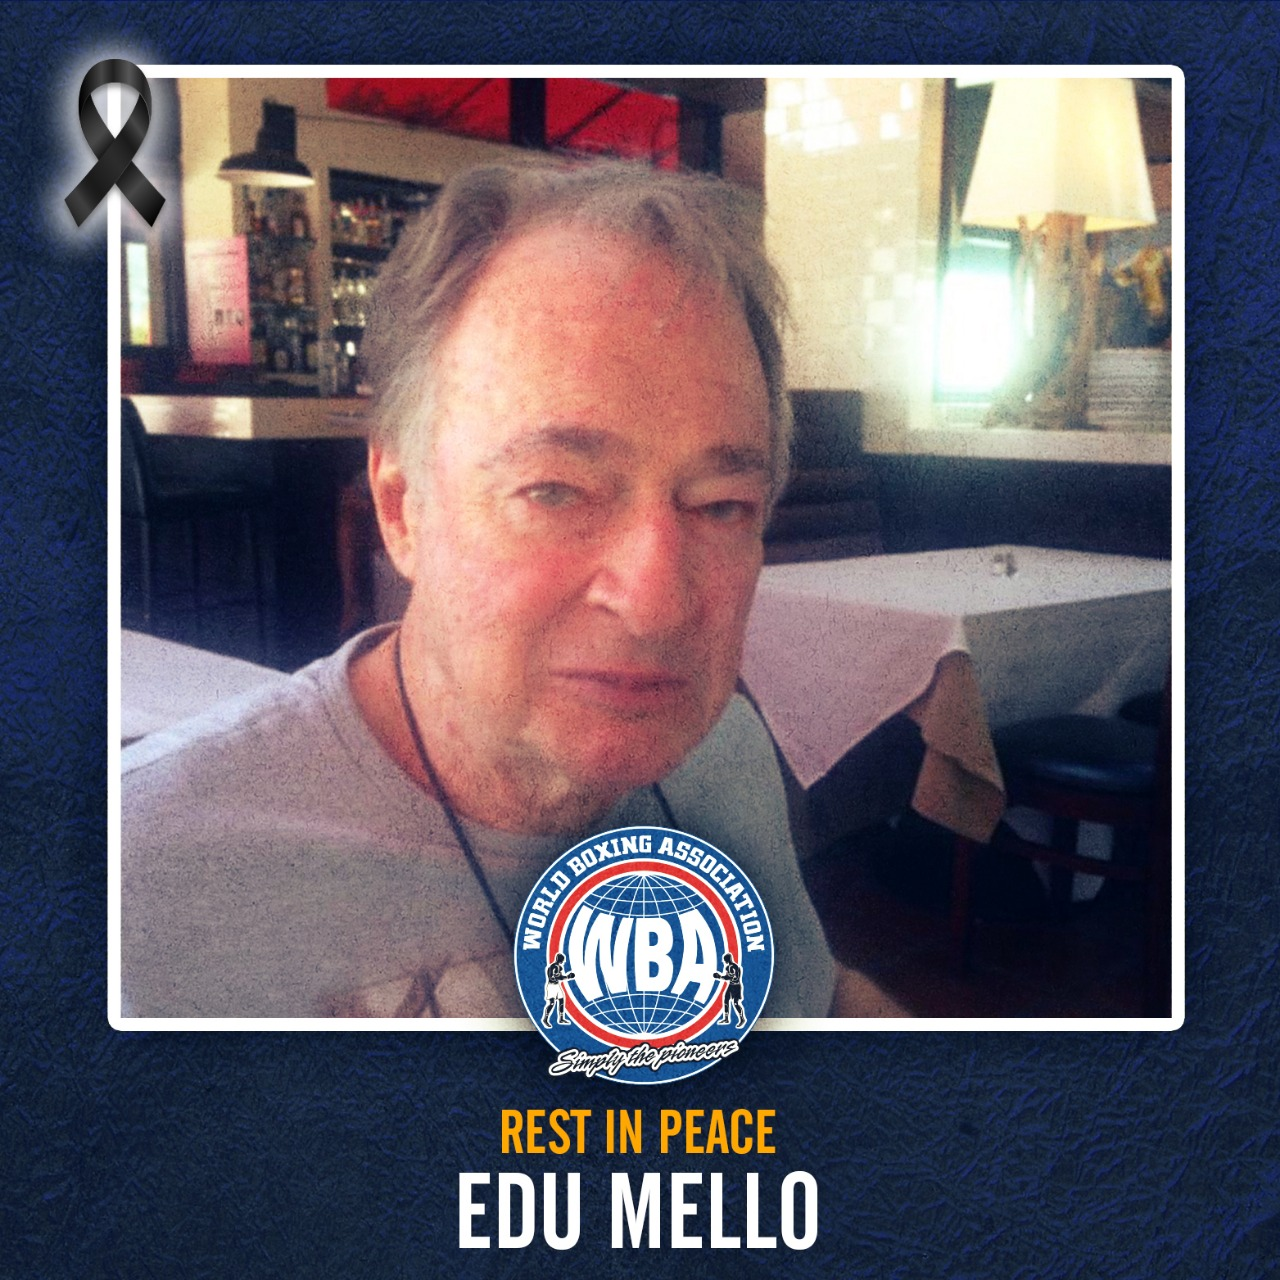 WBA mourns the death of promoter Edu Mello